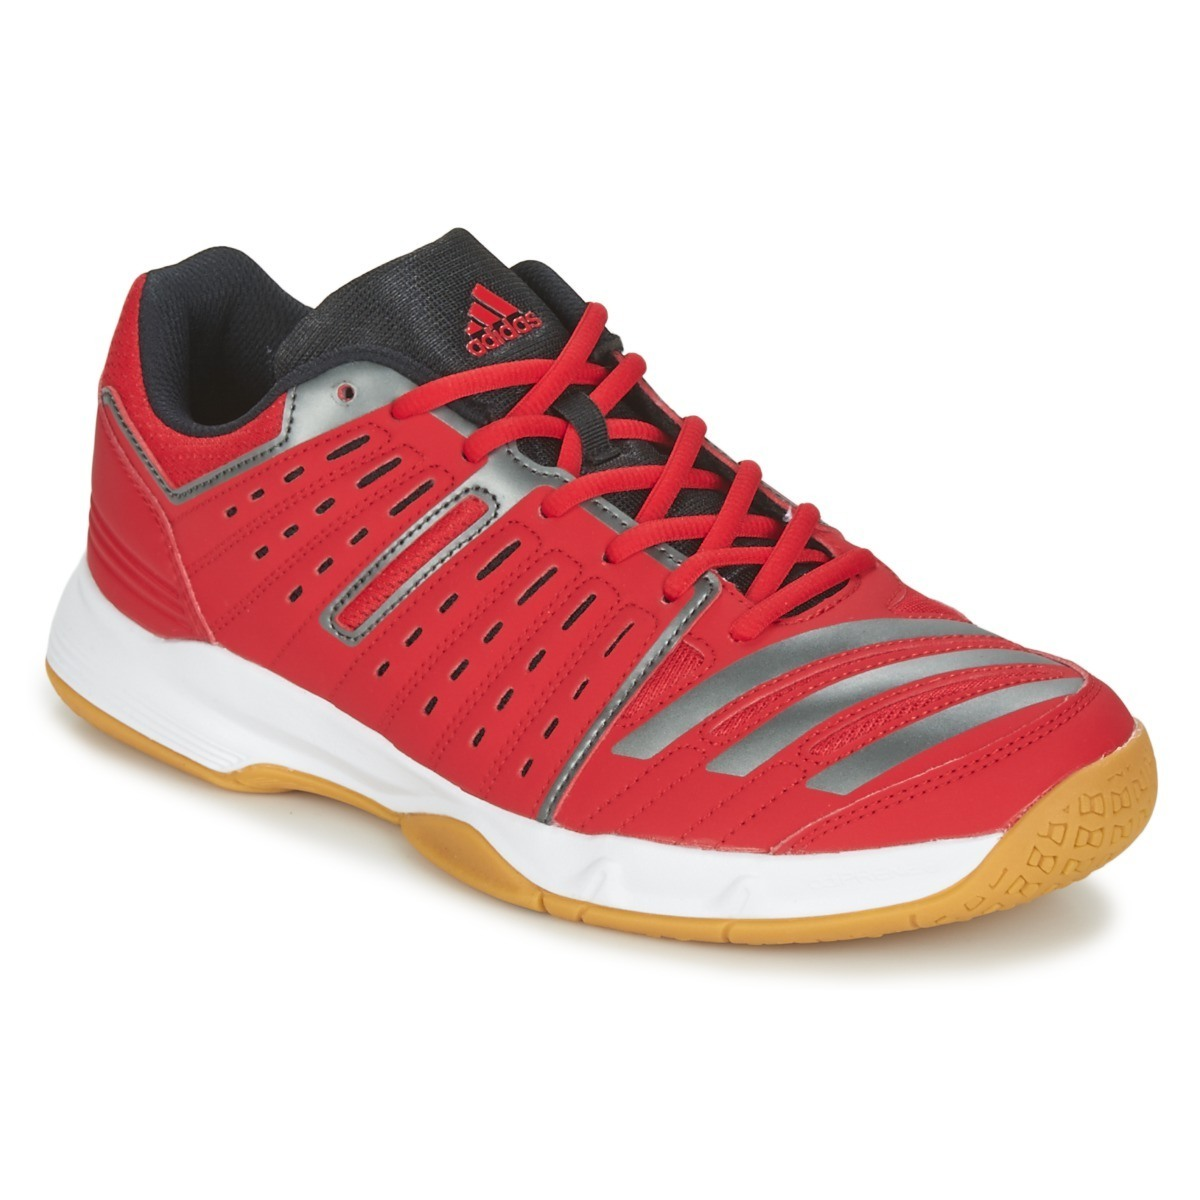 Adidas Essence 12 Men - Red Black Silver